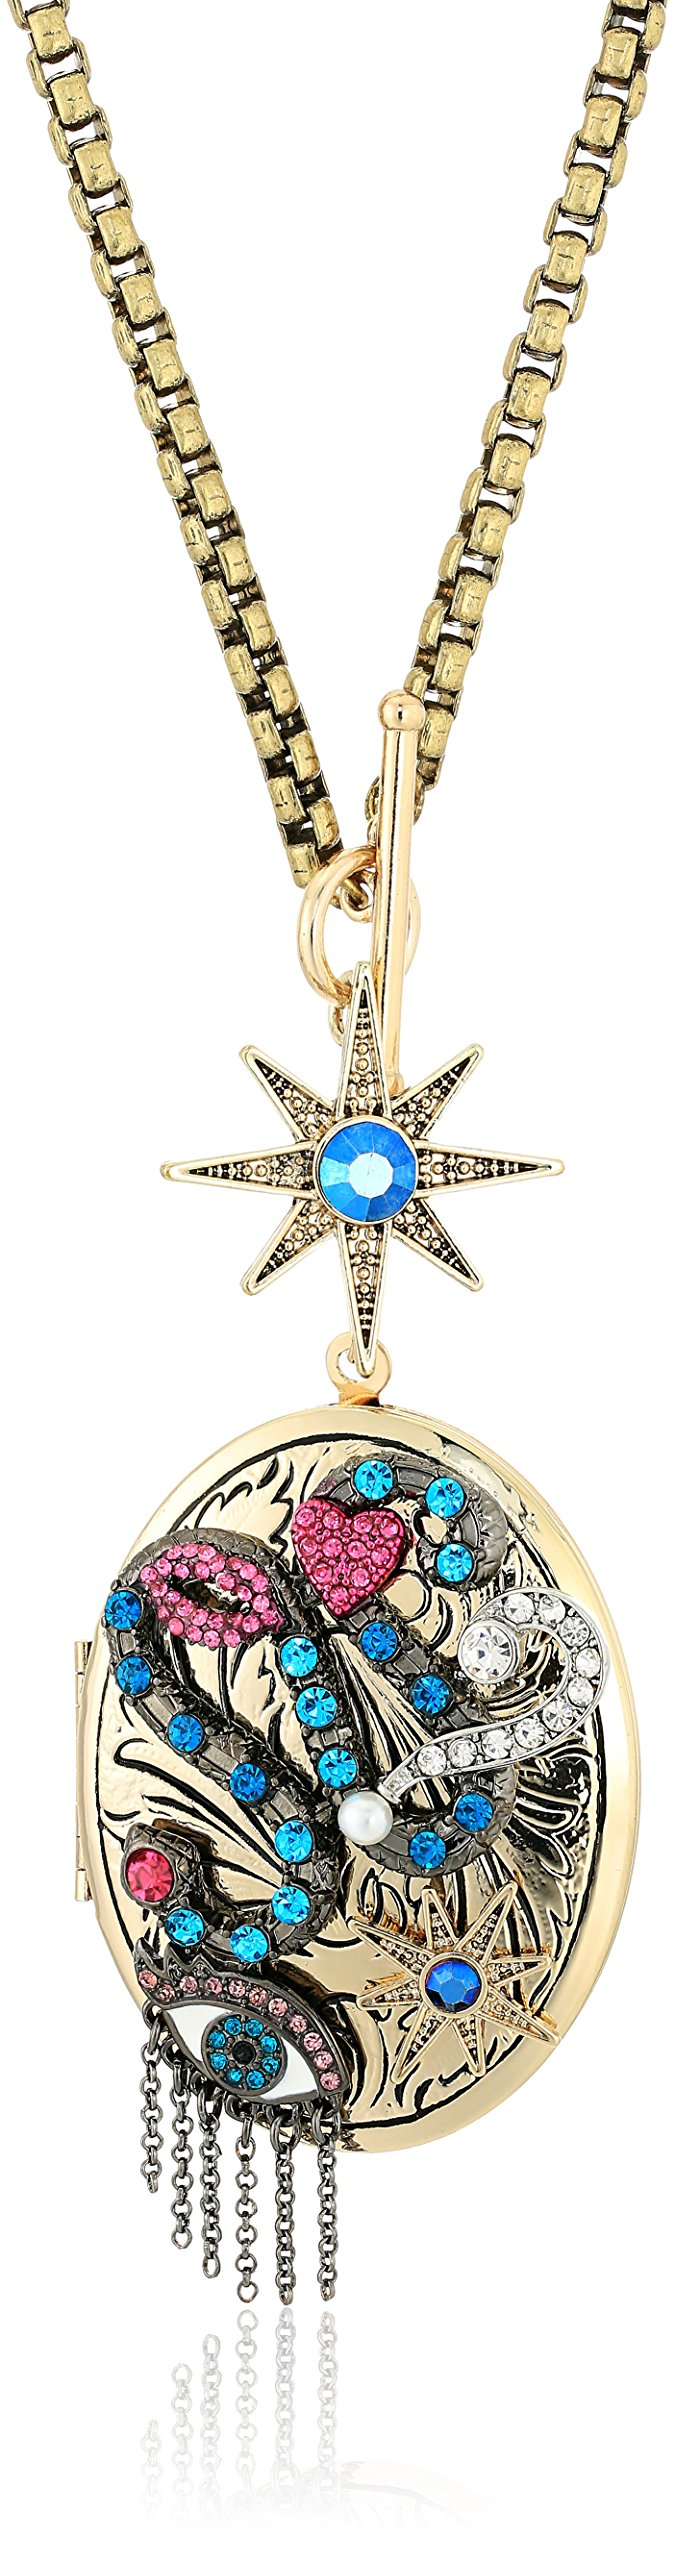 Betsey Johnson Mystic Baroque Queens Gold Pendant Locket Necklace